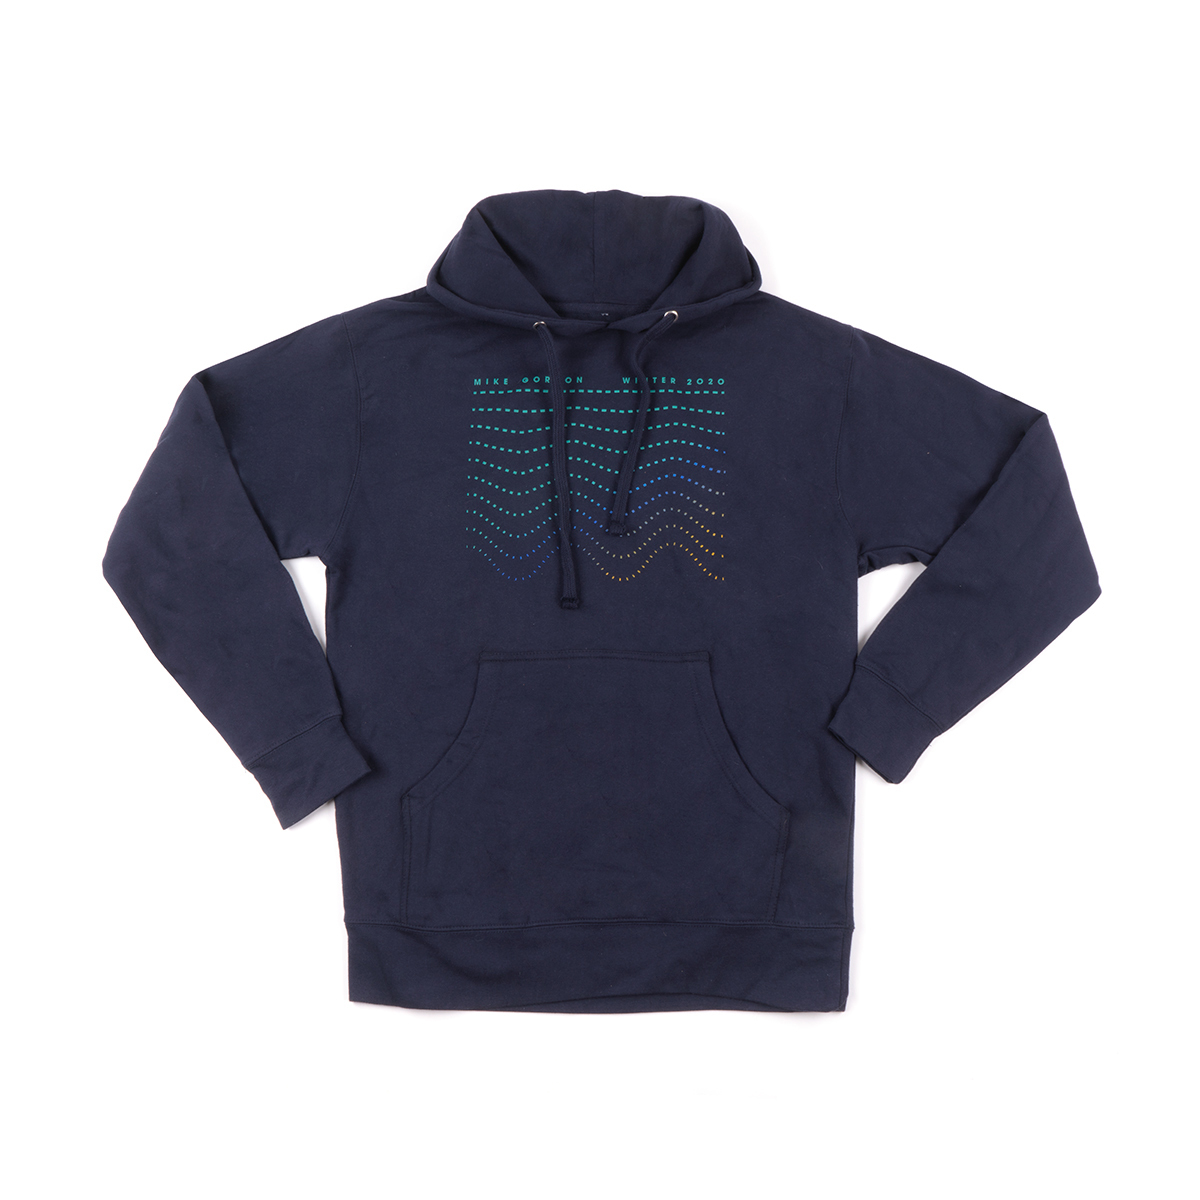 Mike Gordon 2020 Winter Tour Hoodie